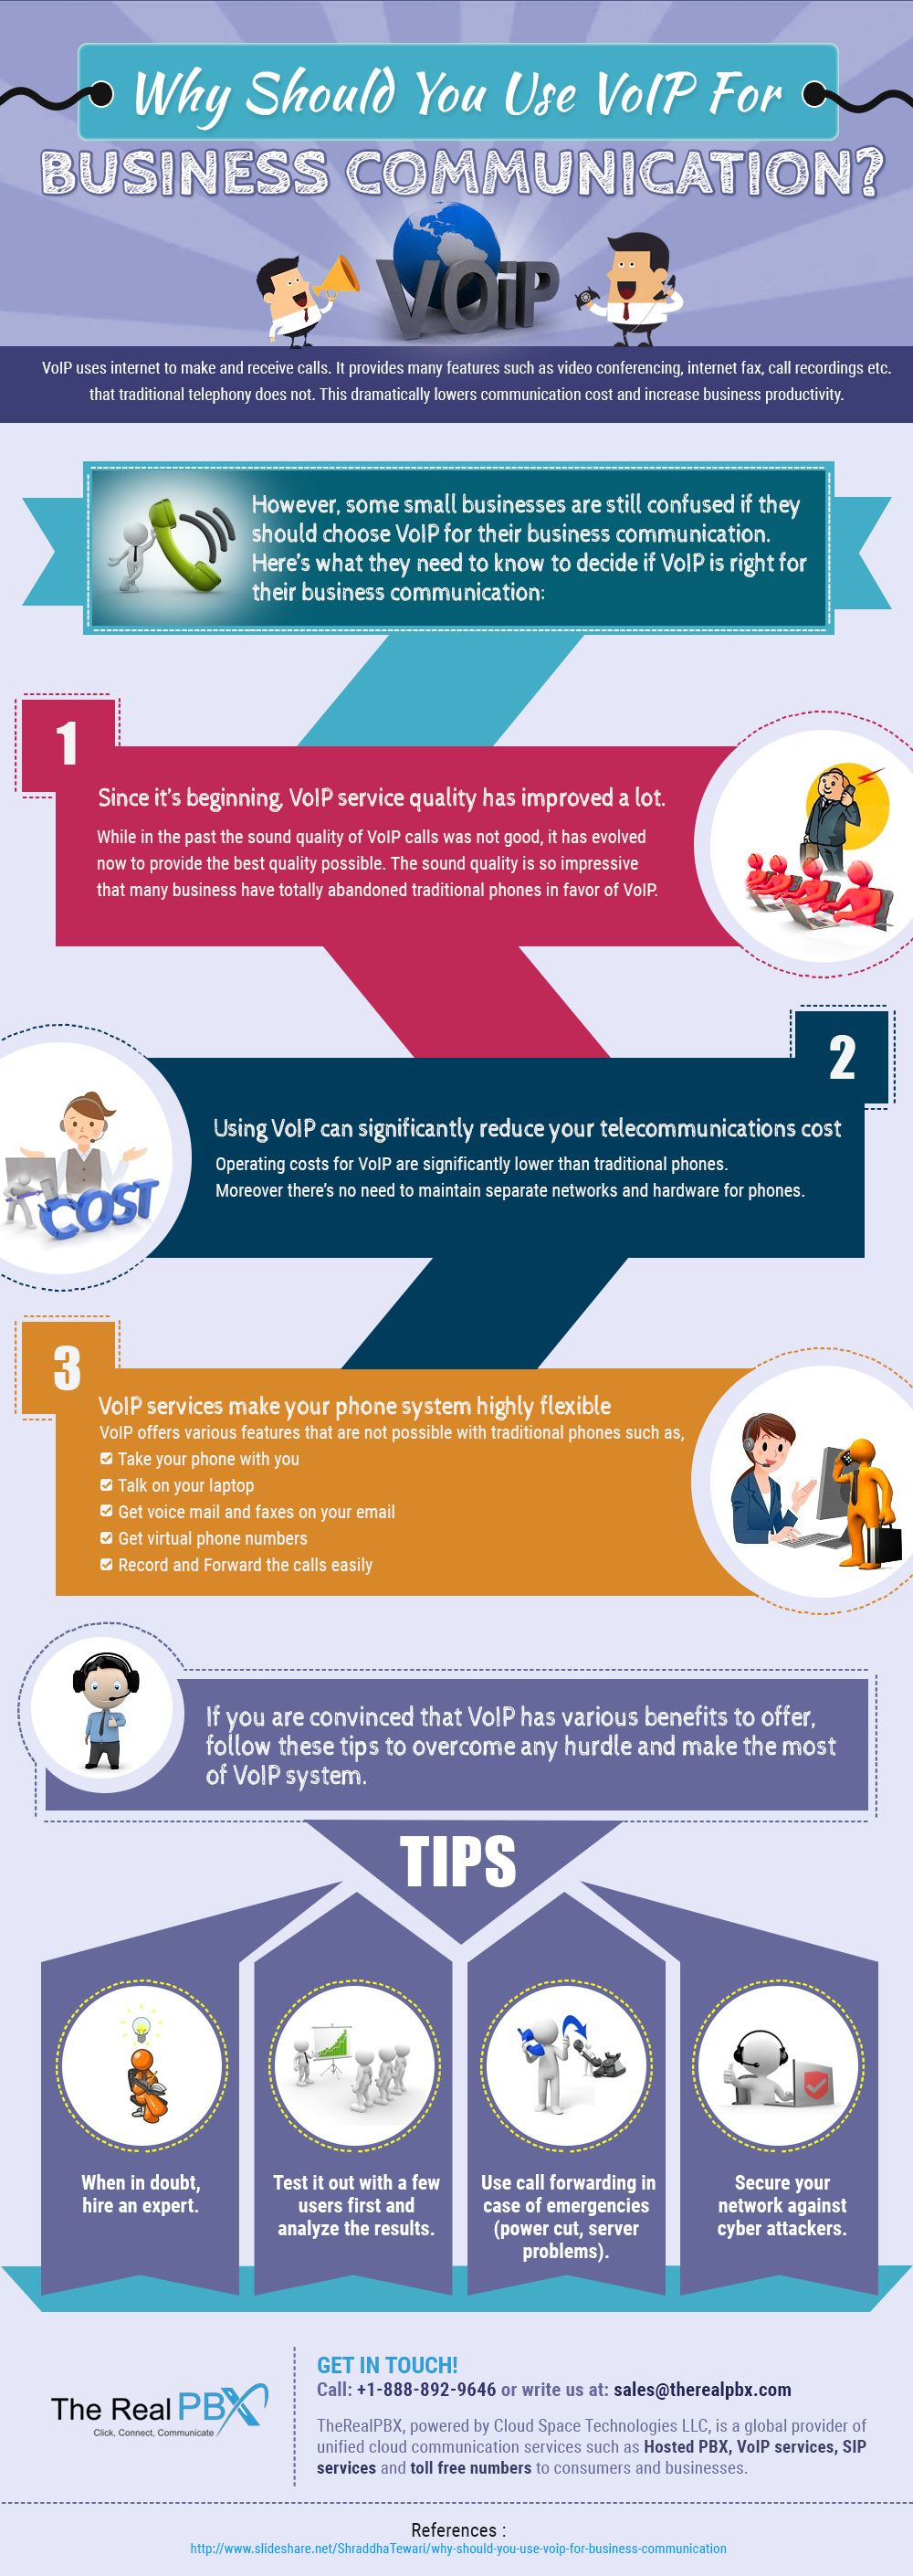 What is voip and how you - Infographic Why Should You Use Voip For Business Communication